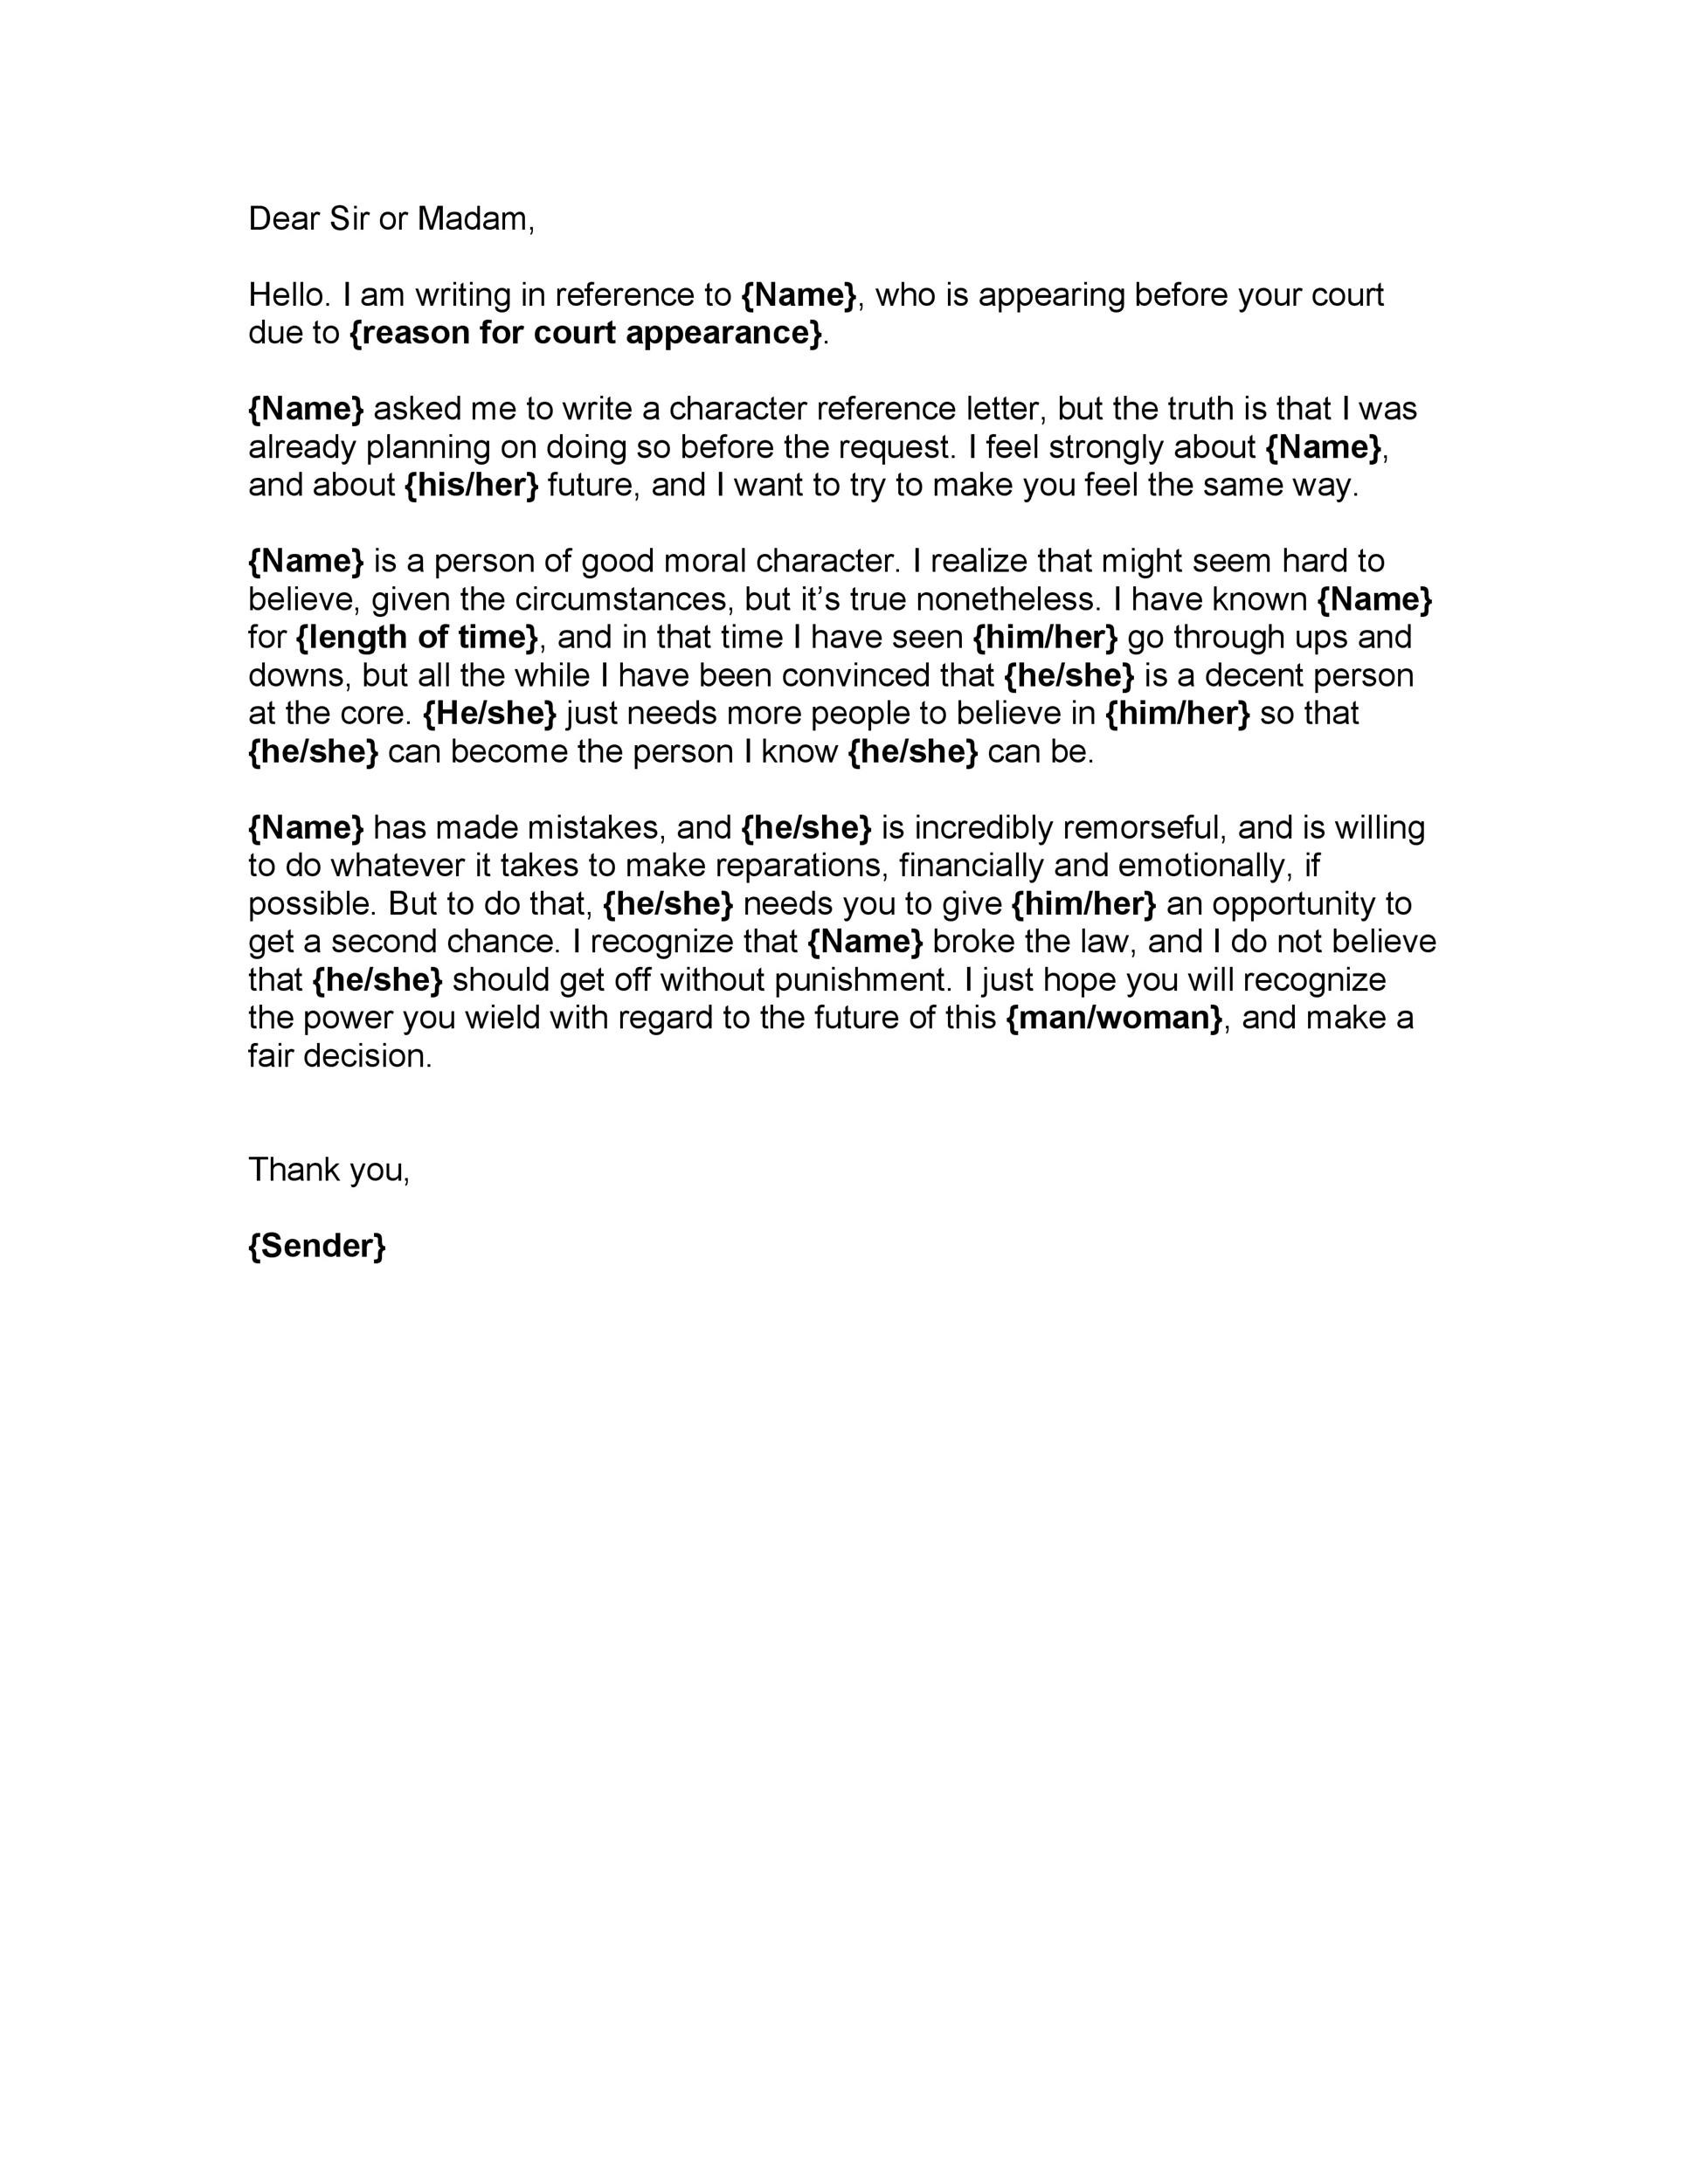 Sample Letter Of Good Moral Character For Court from templatelab.com